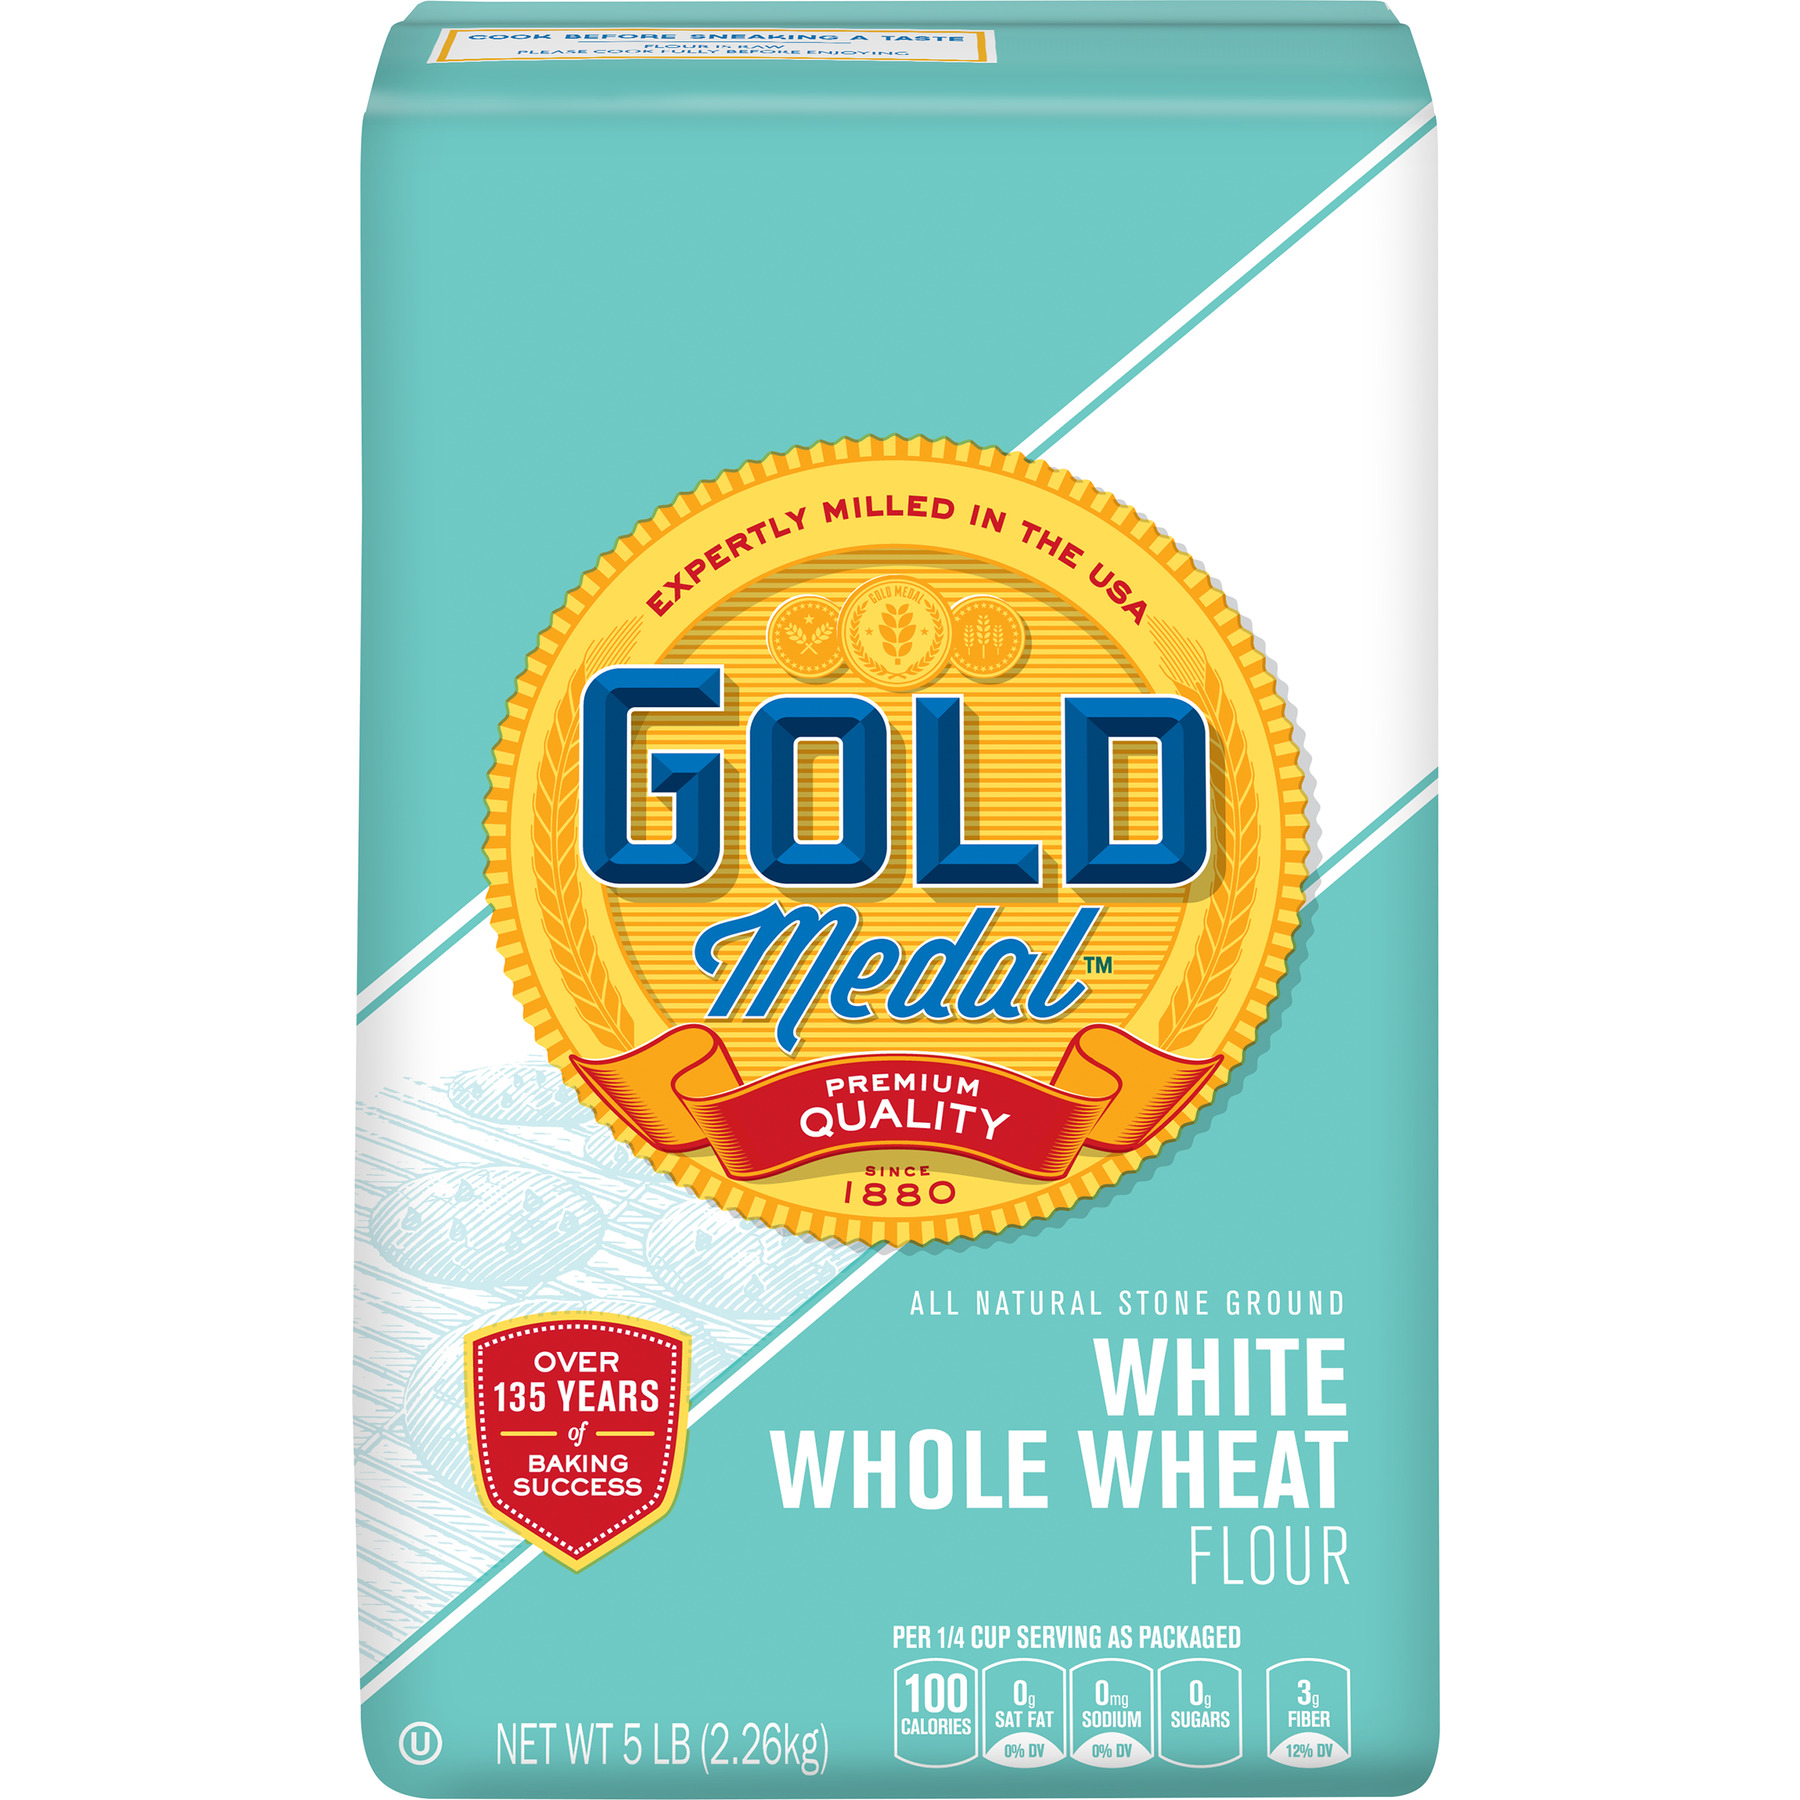 Gold Medal White Whole Wheat Flour, 5 lb Bag